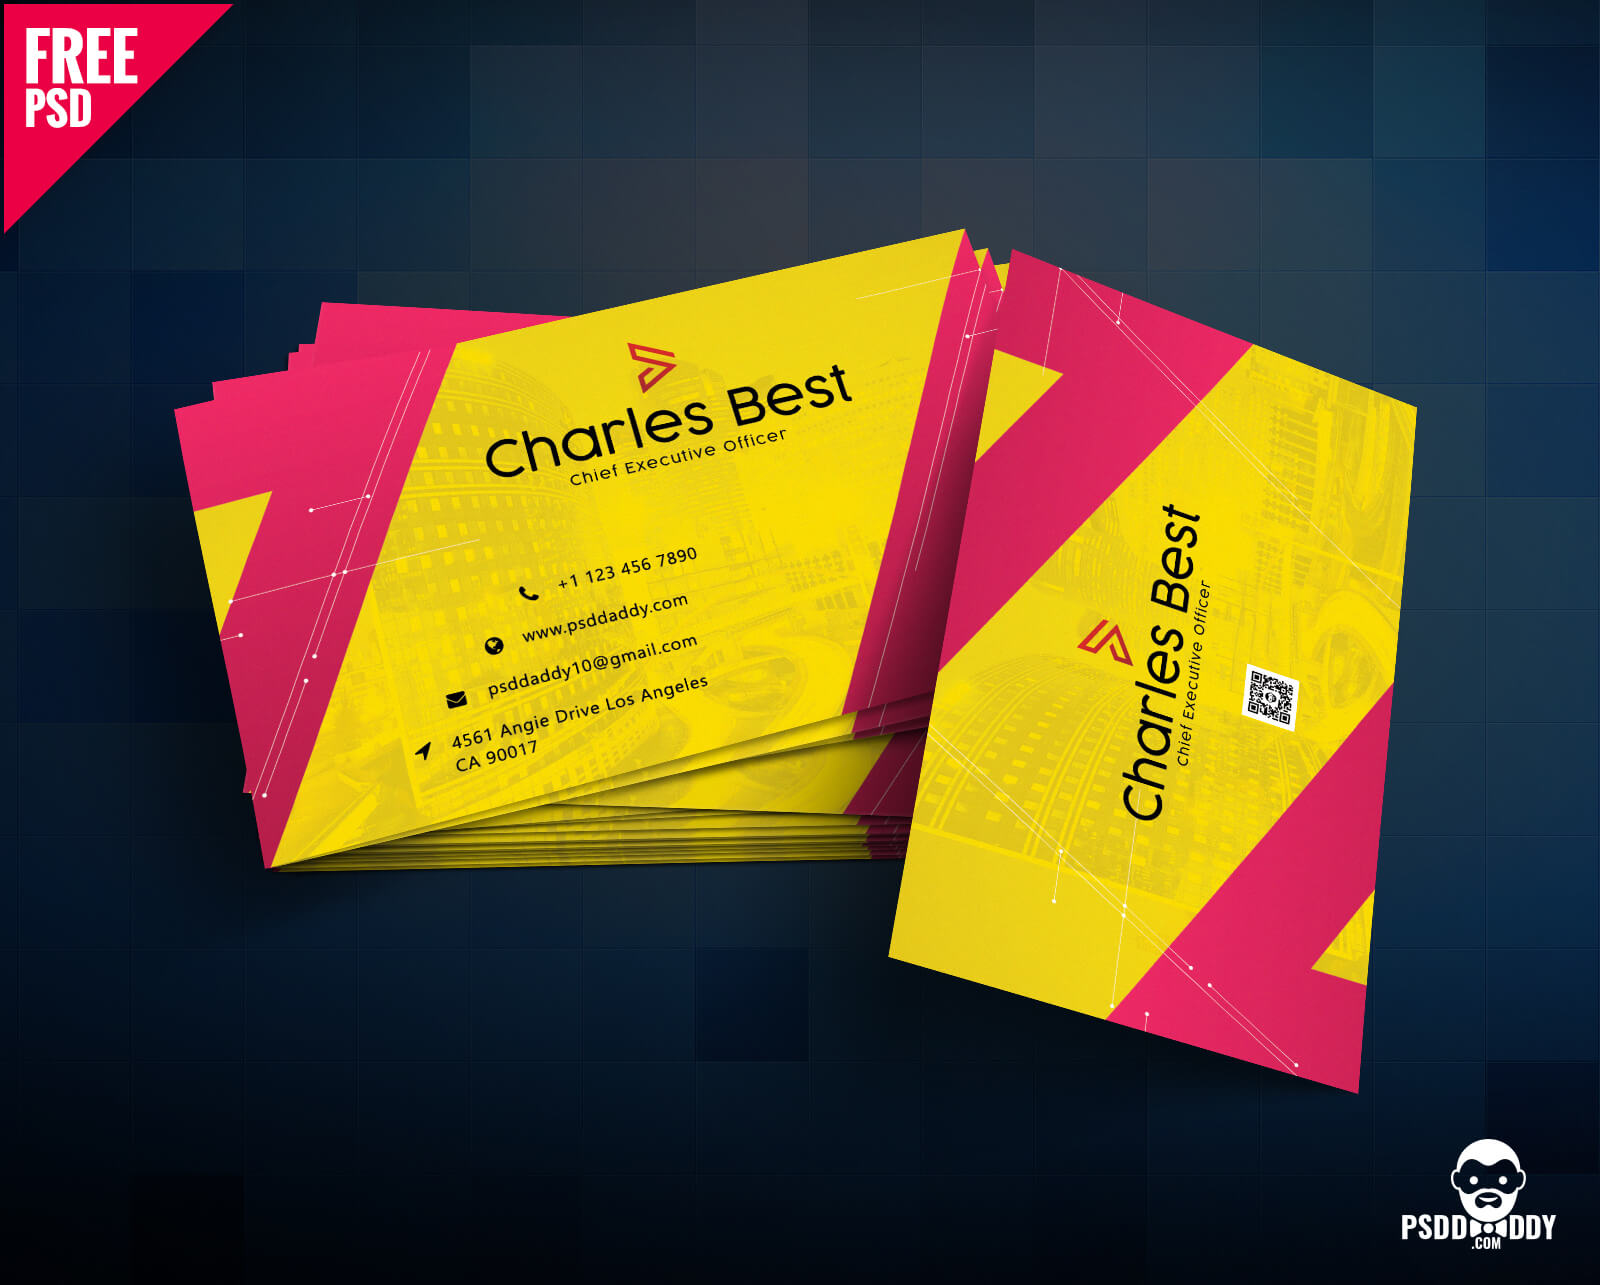 Download] Creative Business Card Free Psd   Psddaddy throughout Photoshop Cs6 Business Card Template